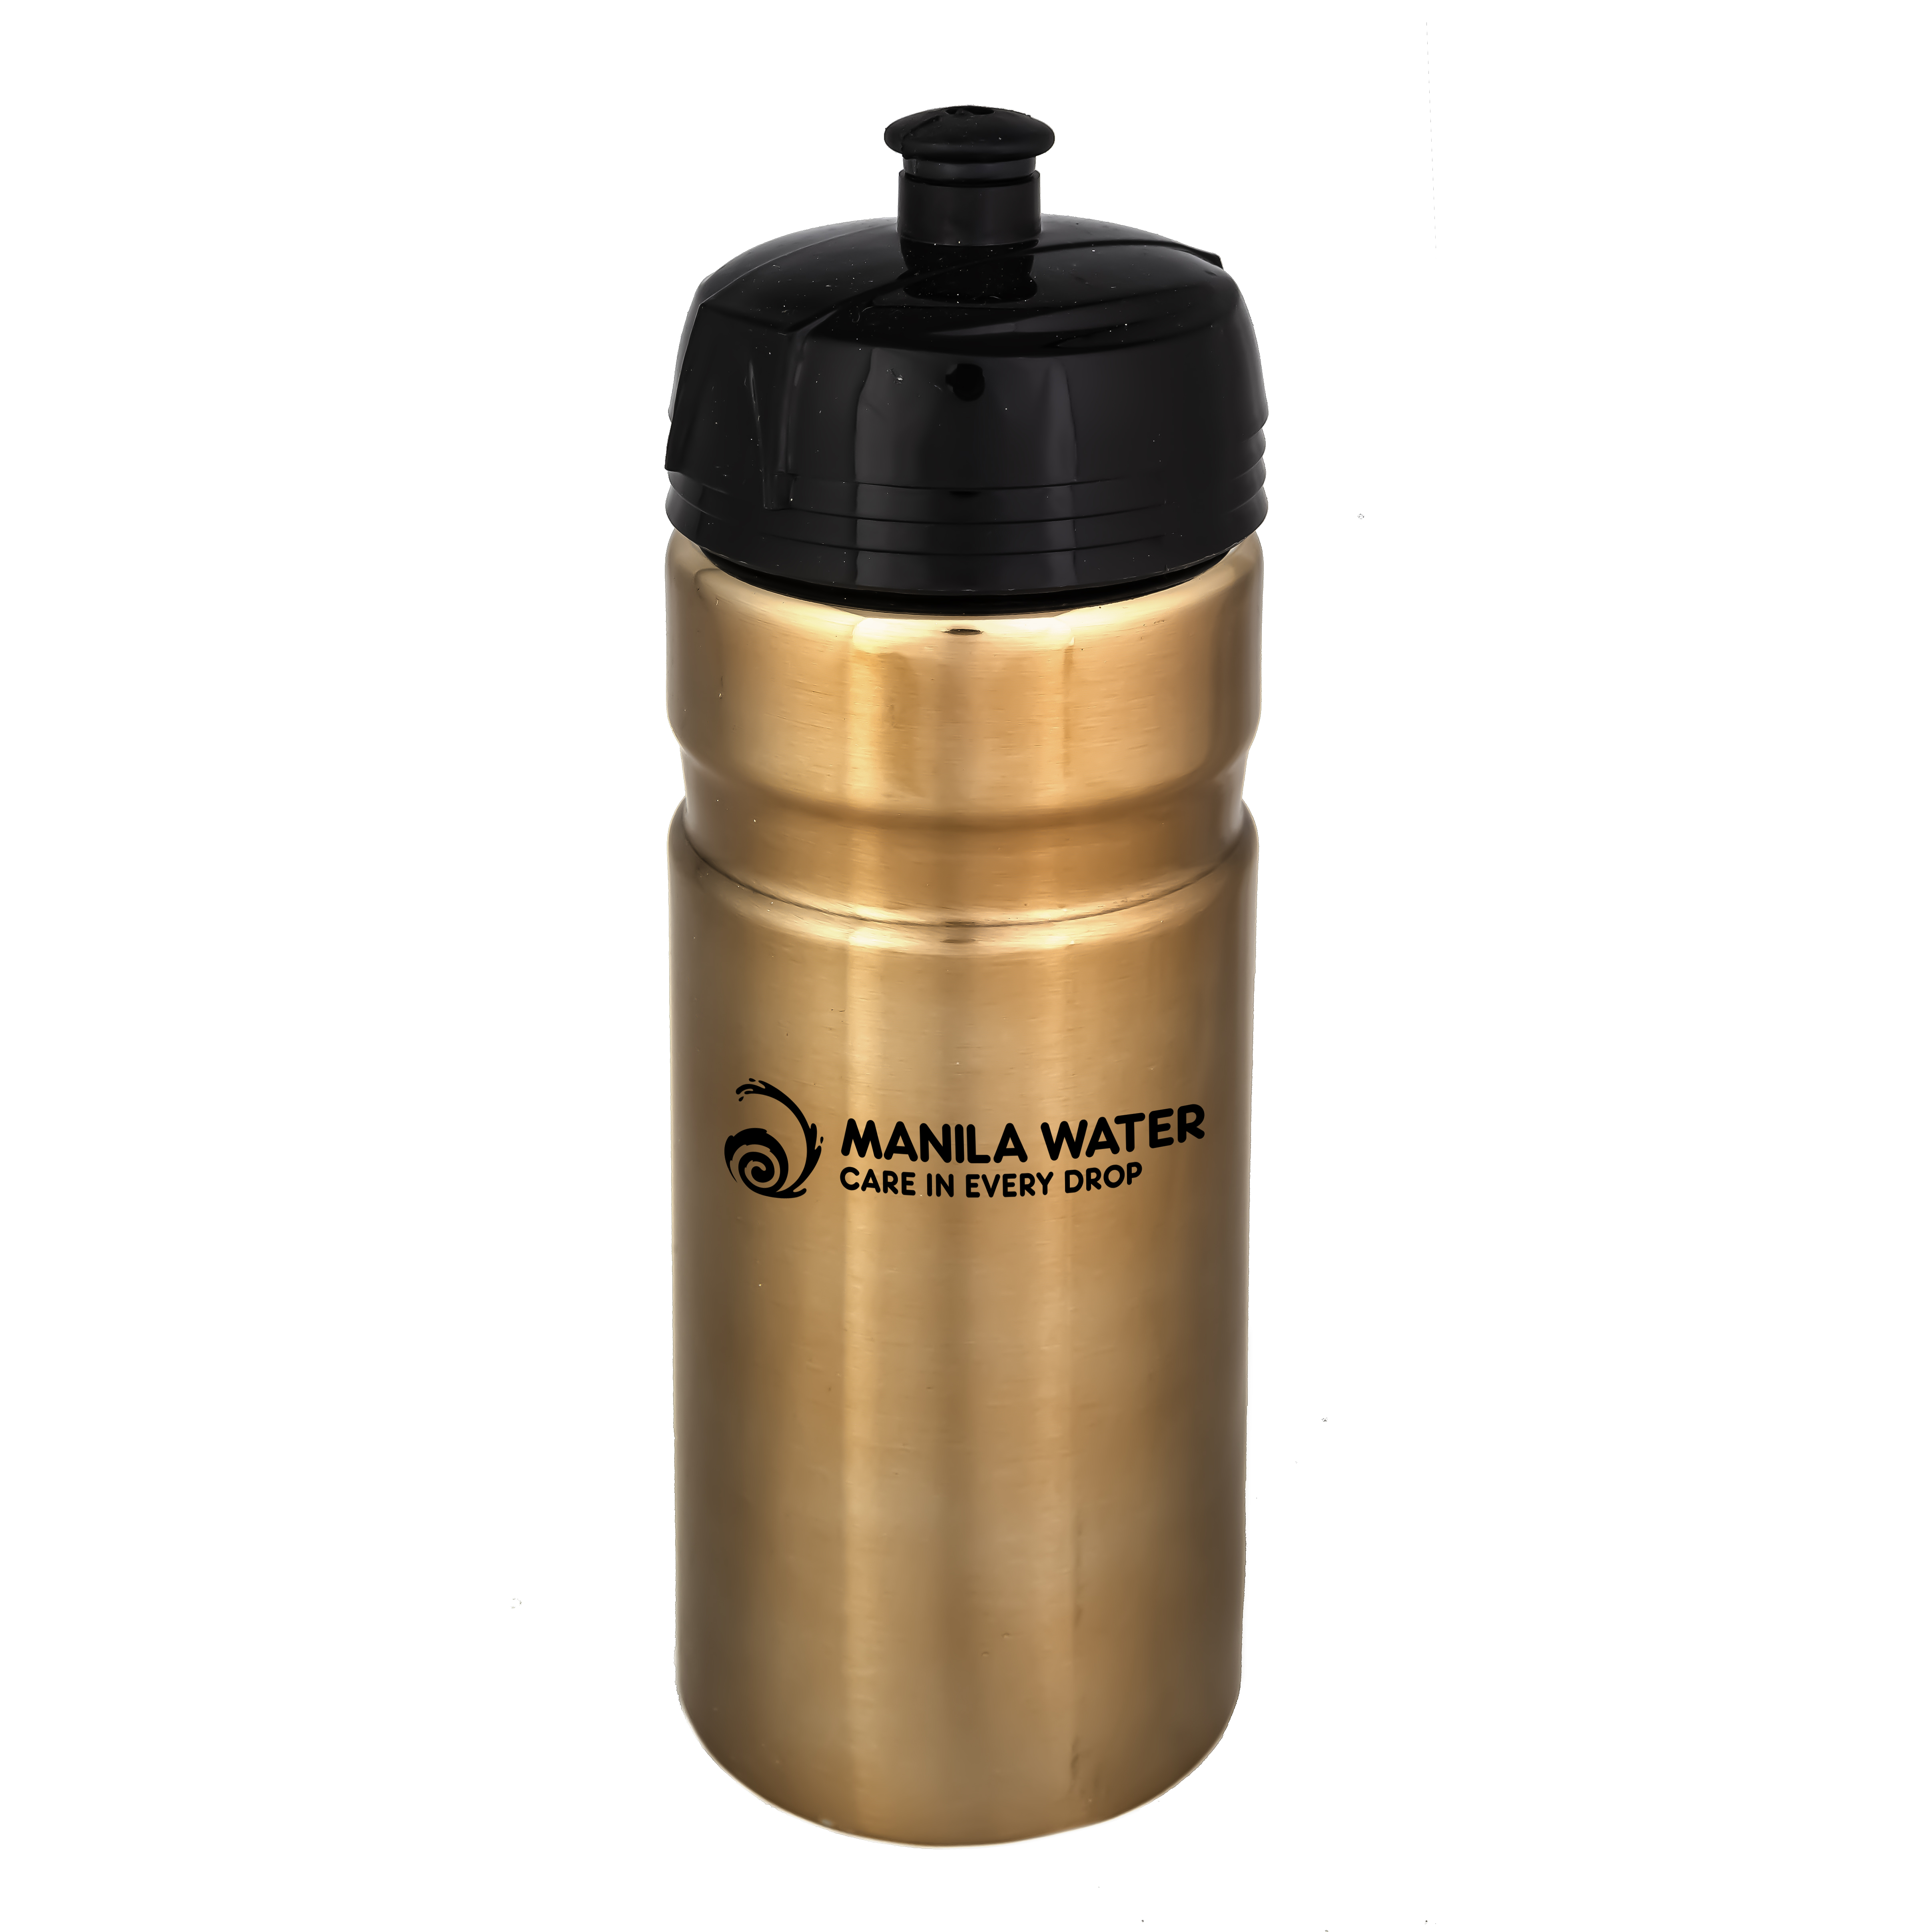 17 OZ. SIENNA   DOUBLE WALL INSULATED  SPORTS BOTTLE.